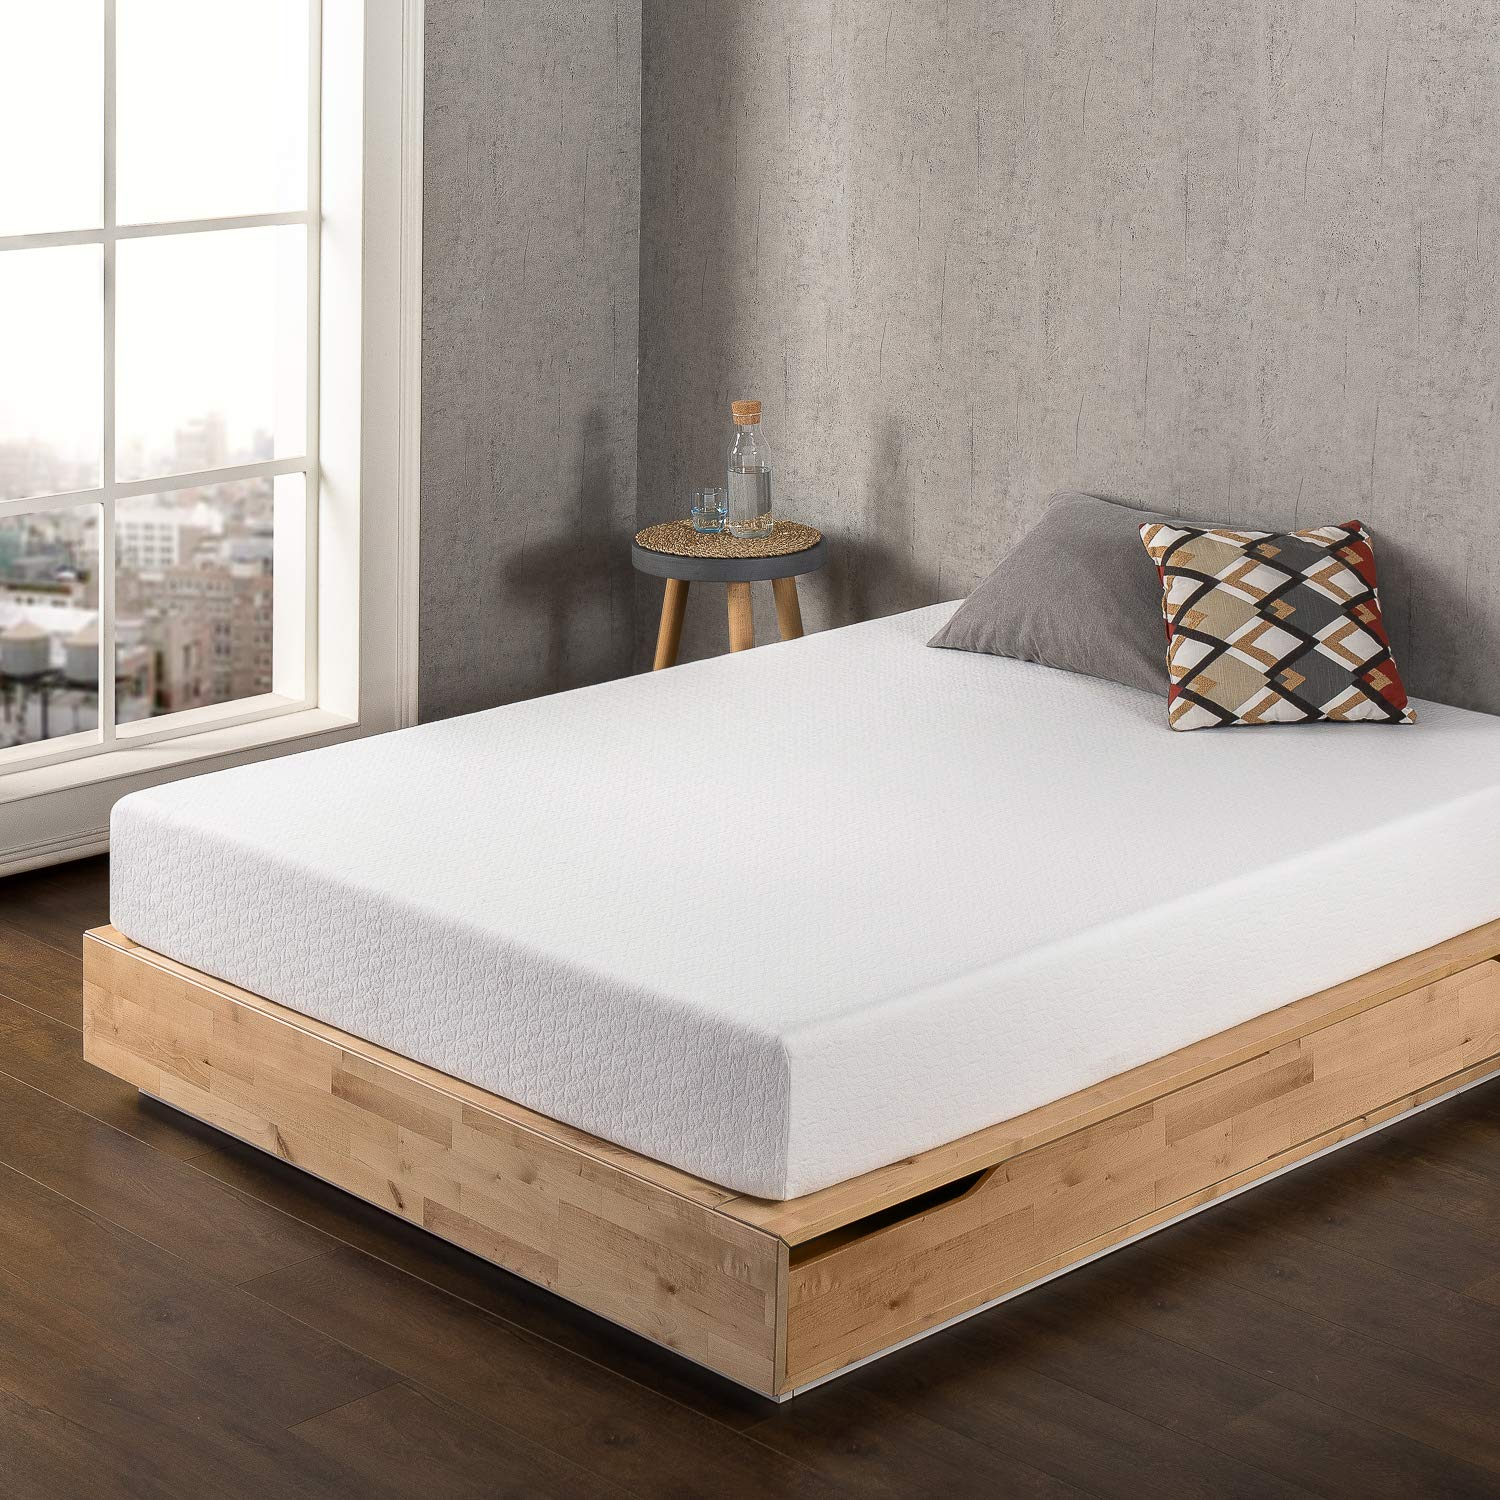 Best Memory Foam Mattress Reviews 9